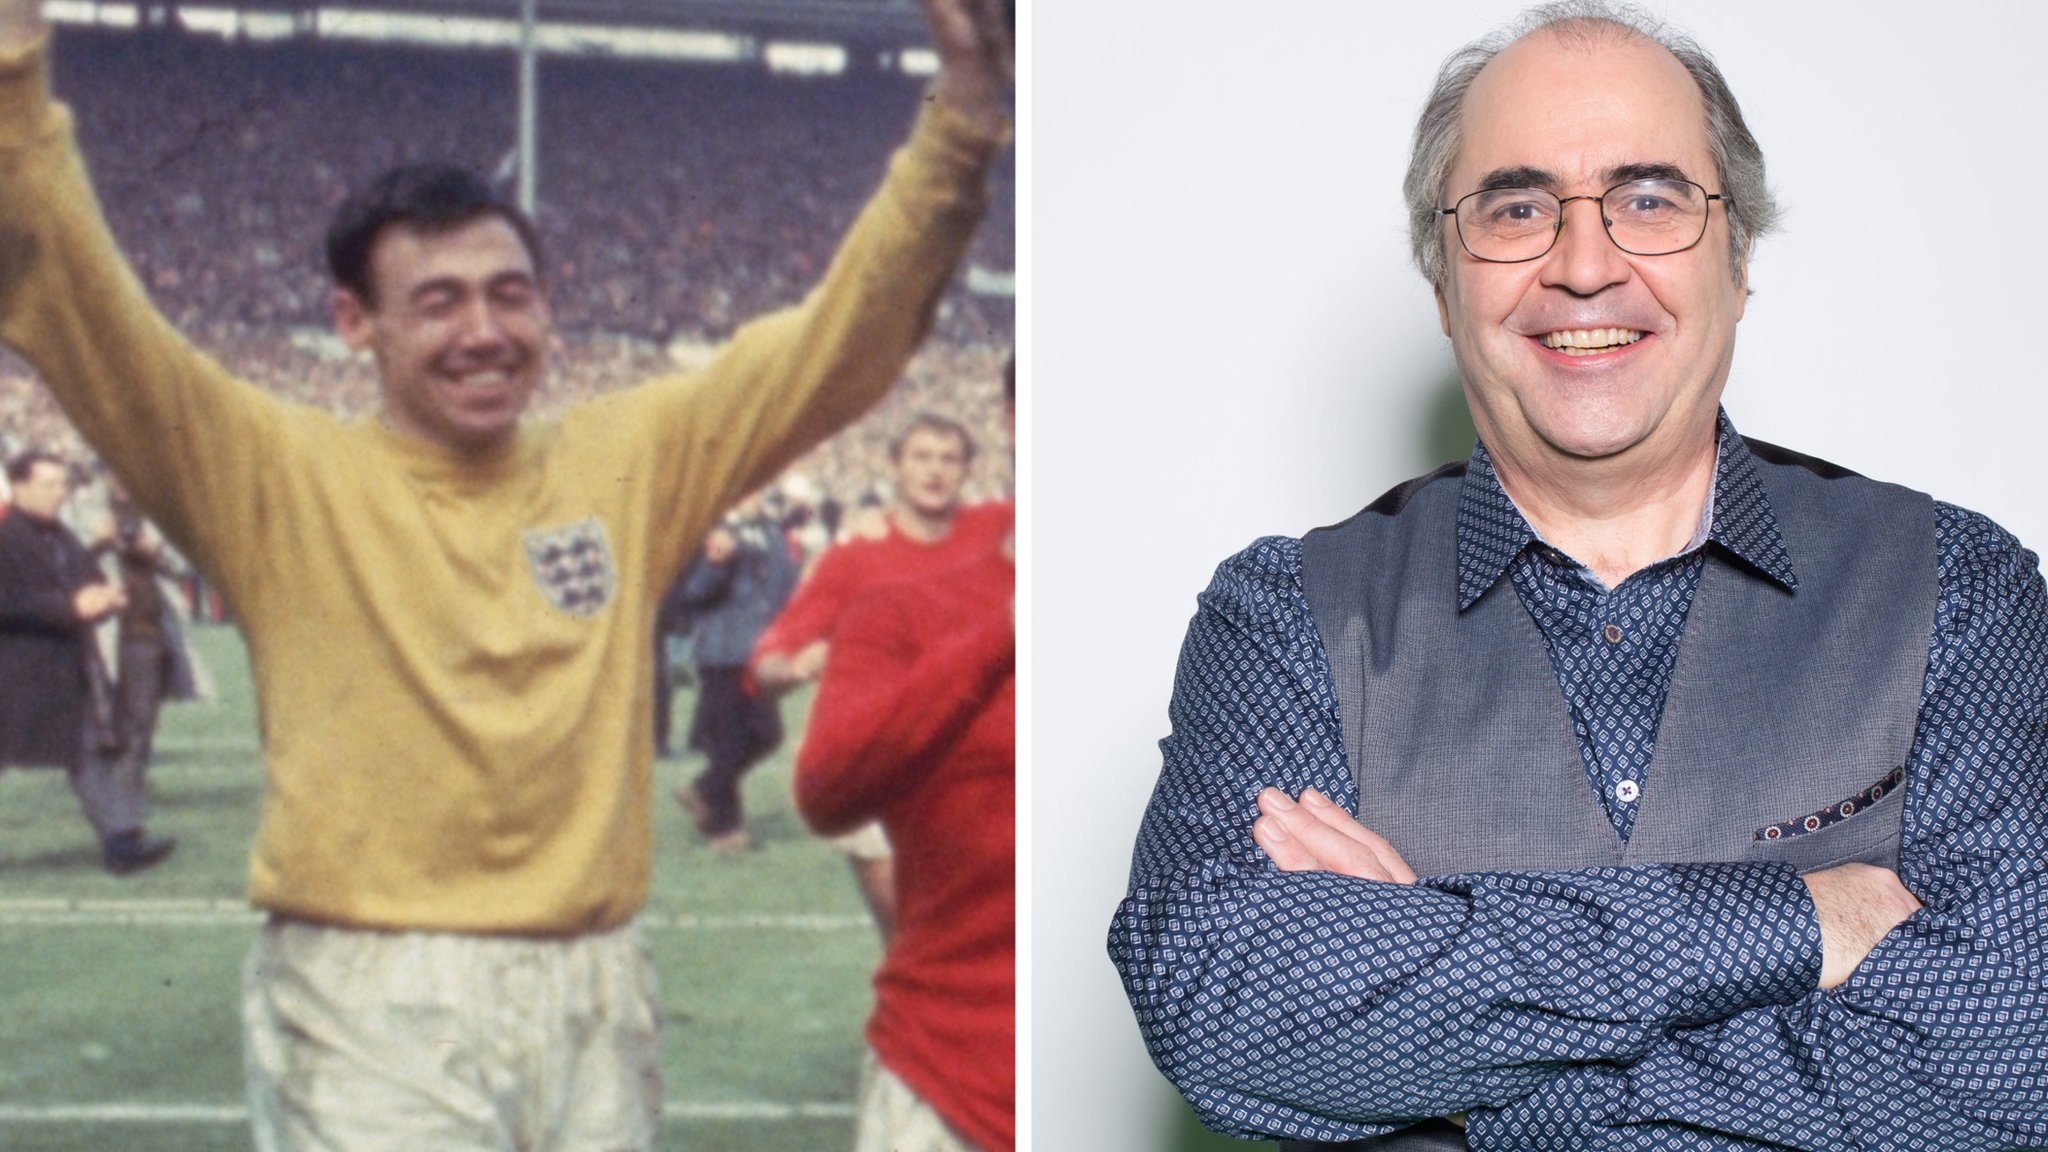 Gordon Banks shirt campaign reaches 11,000 retweets